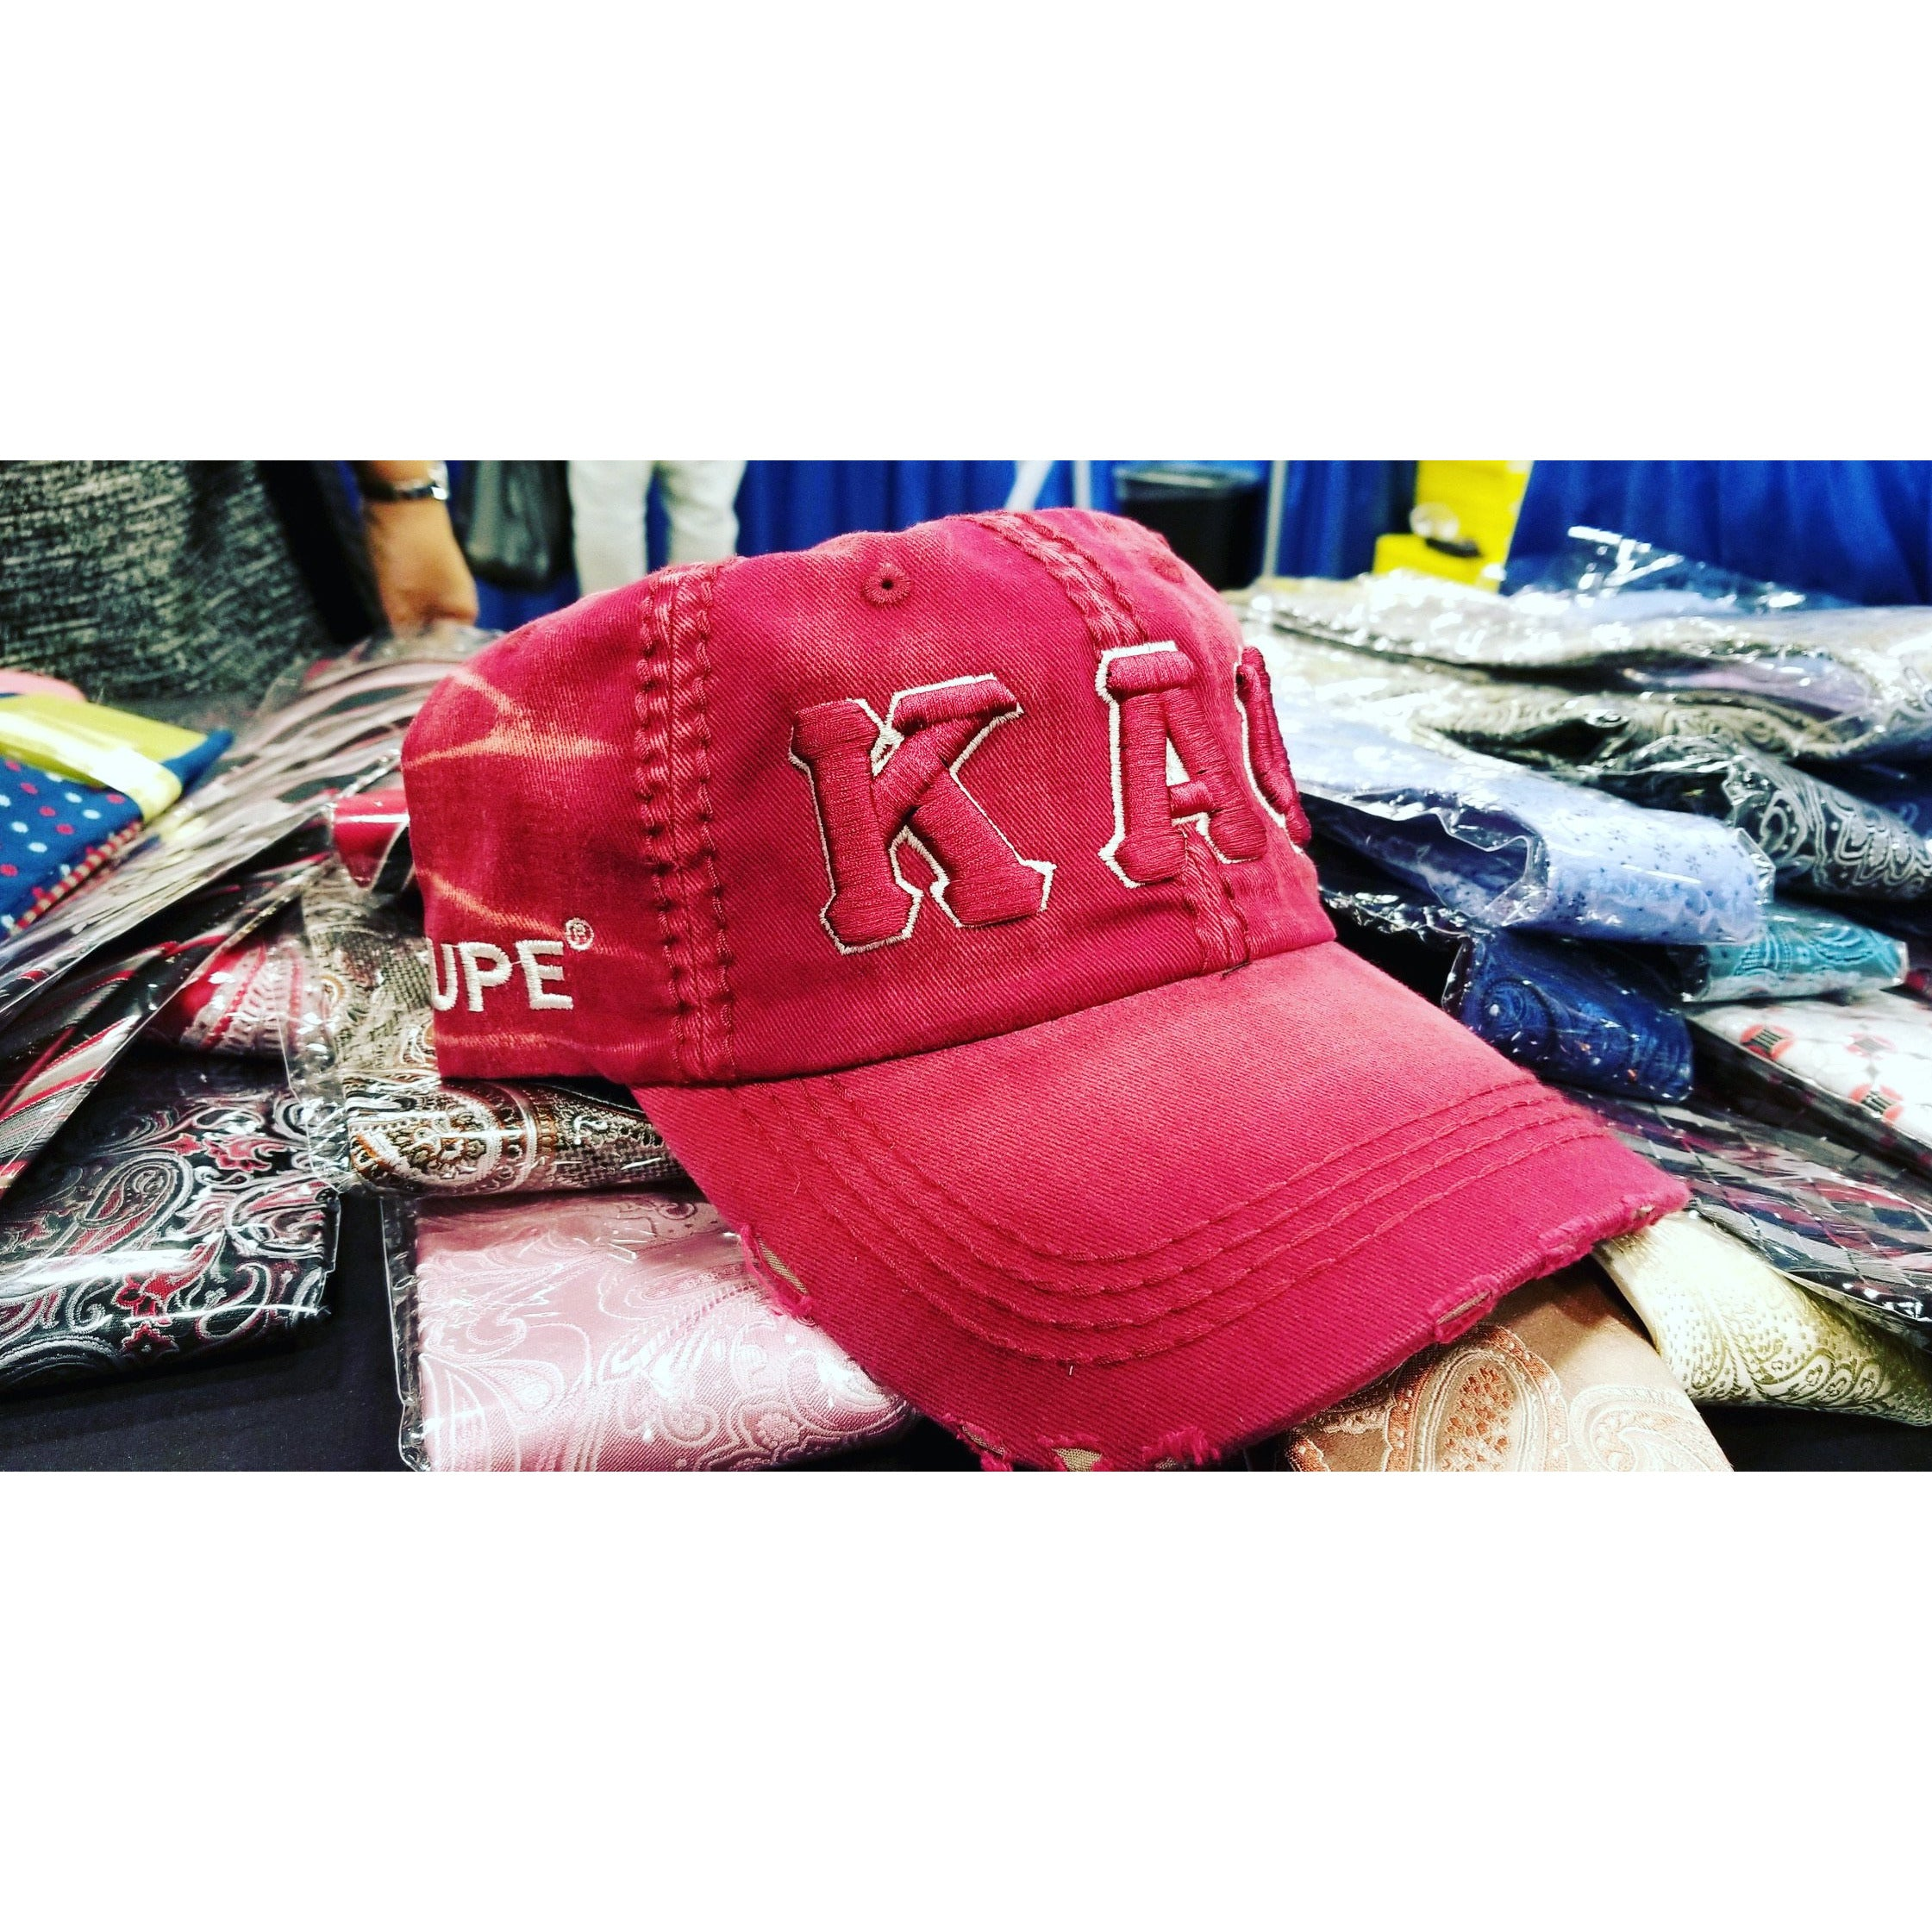 Kappa Alpha Psi red denim dad hat